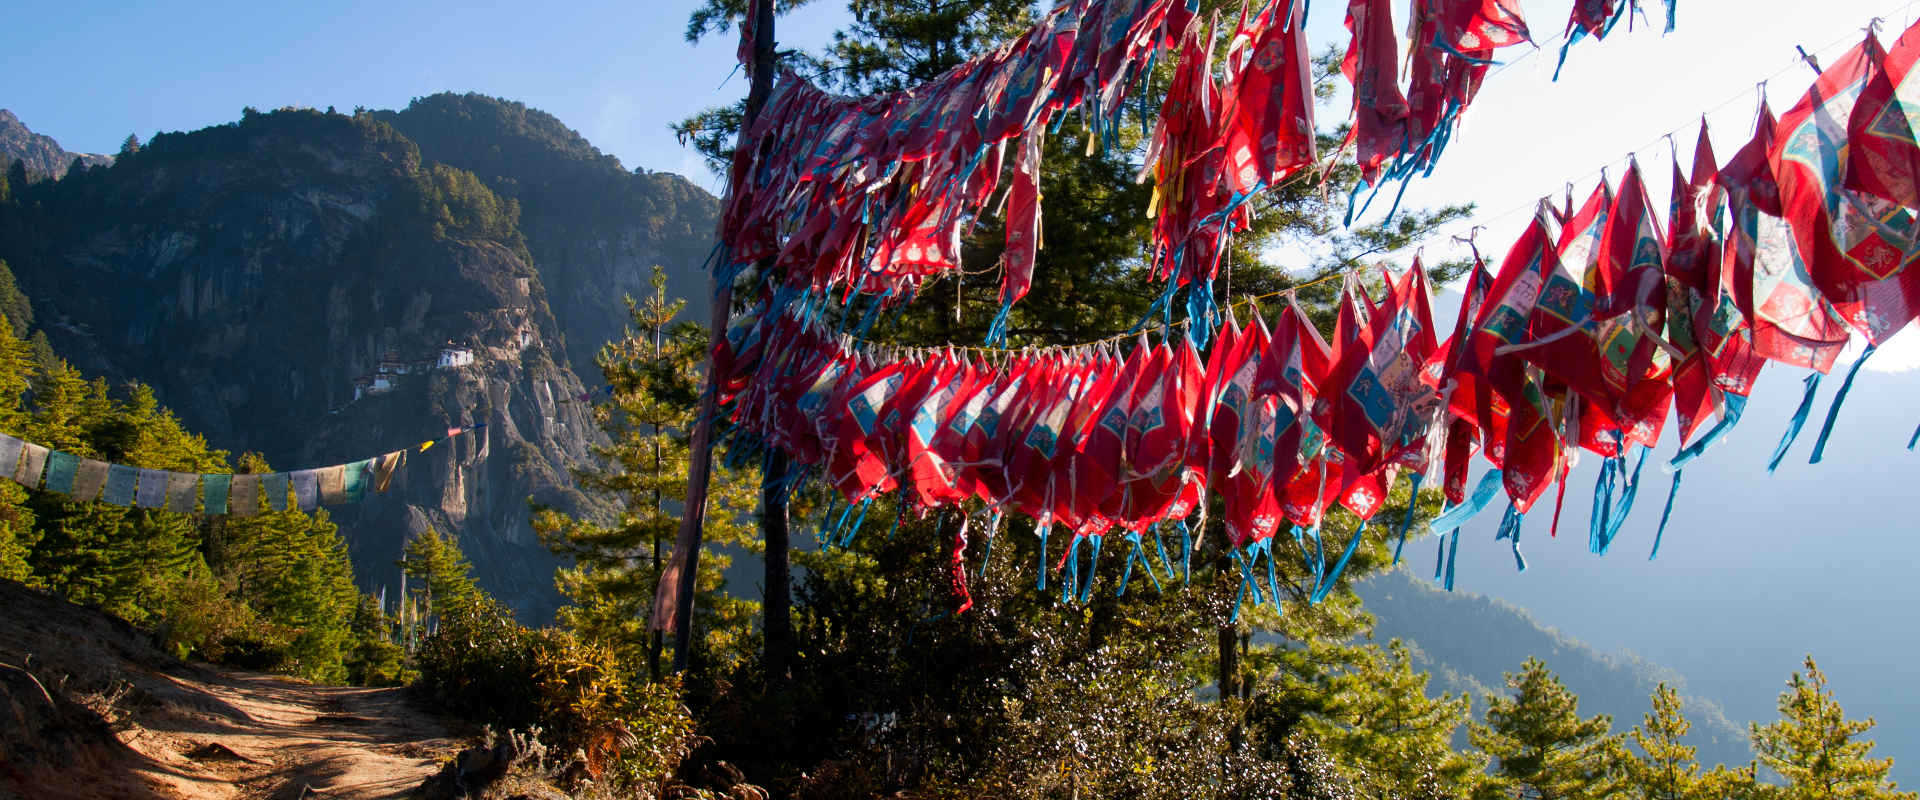 Flags during the Druk Path in Bhutan